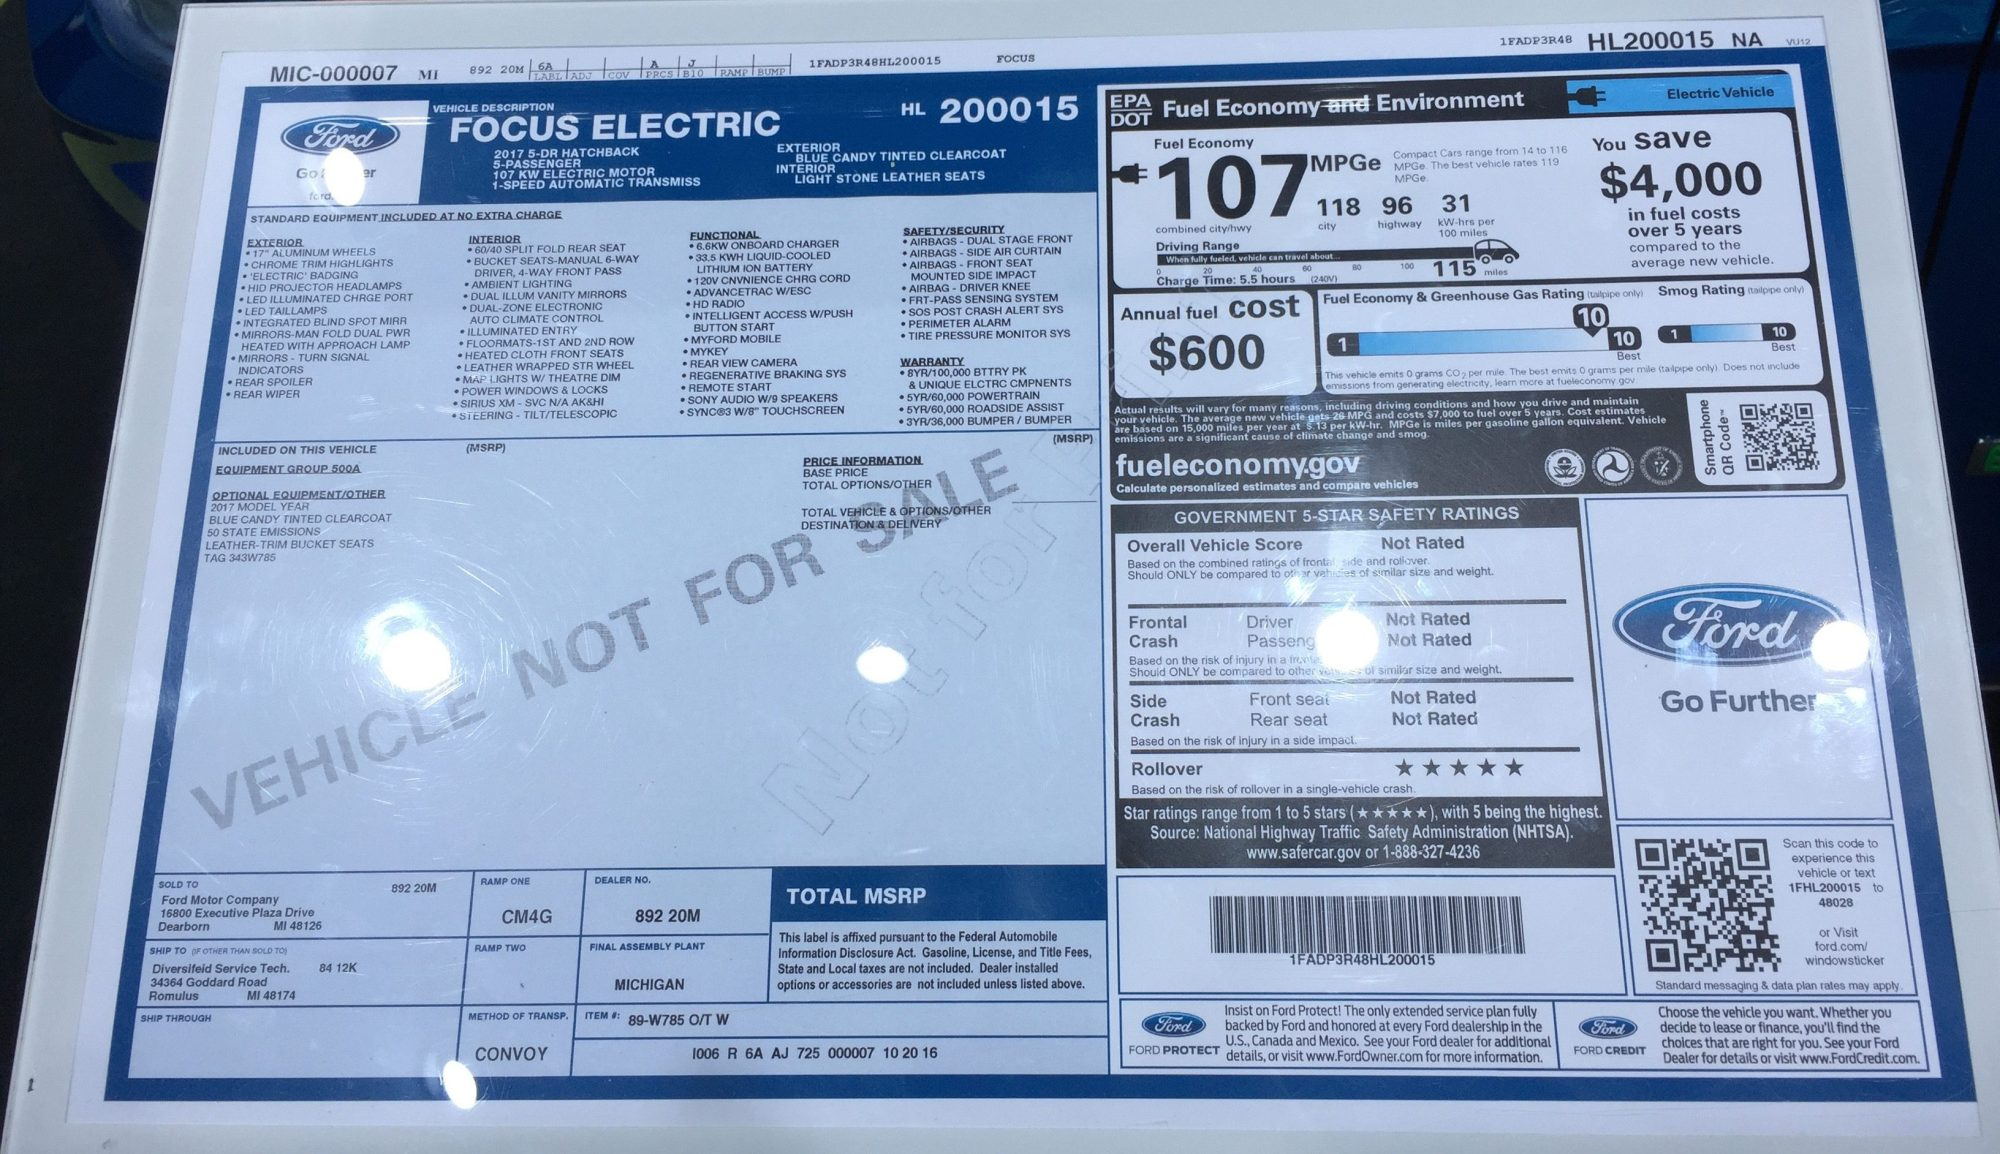 hight resolution of  2017 ford focus electric window sticker